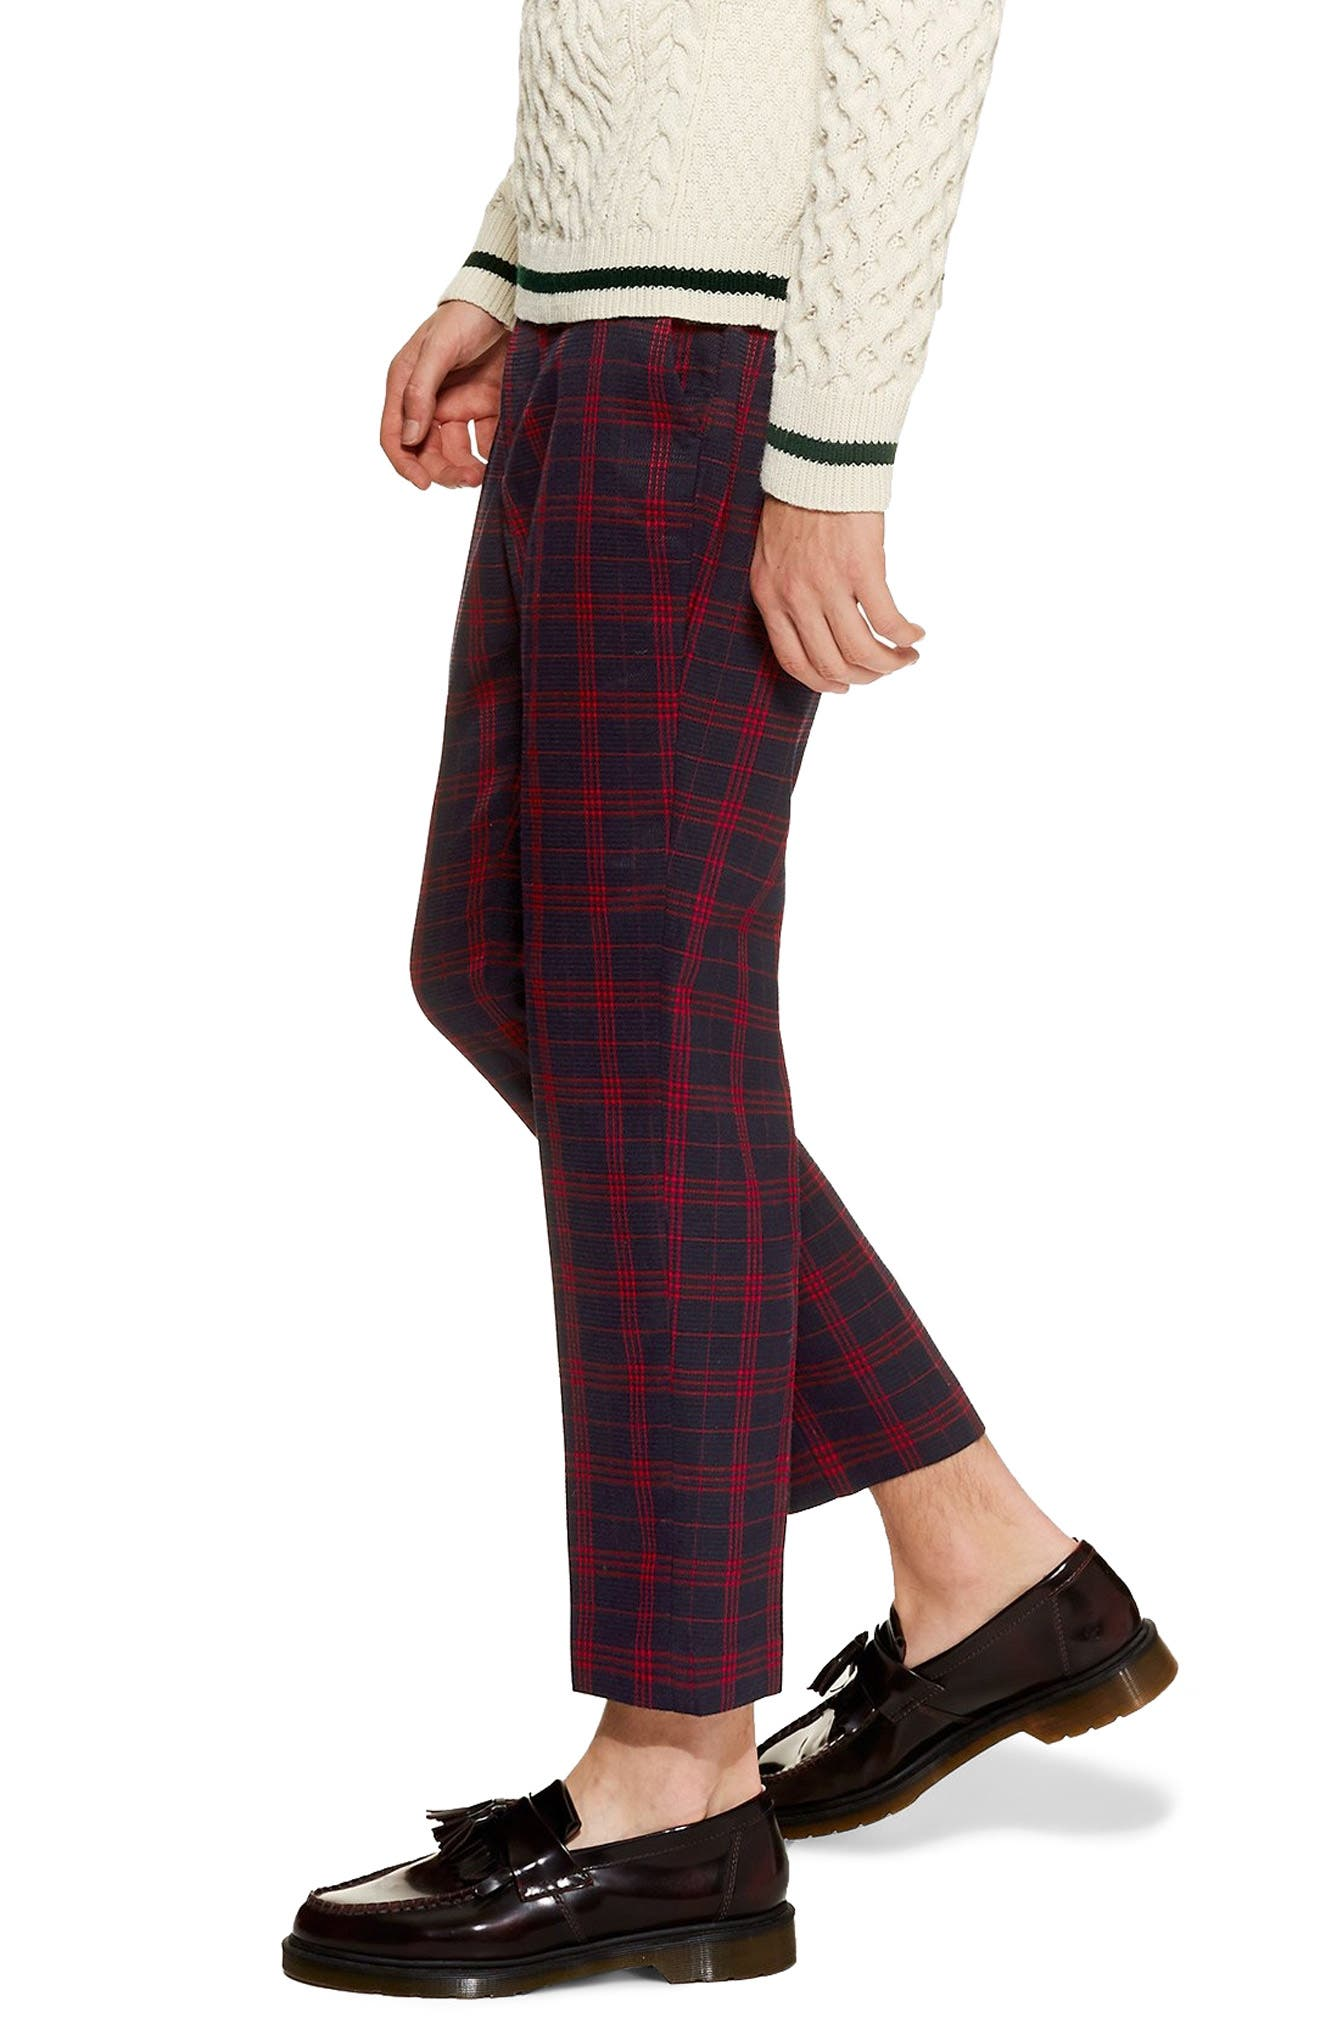 TOPMAN, Plaid Tapered Trousers, Alternate thumbnail 3, color, 401